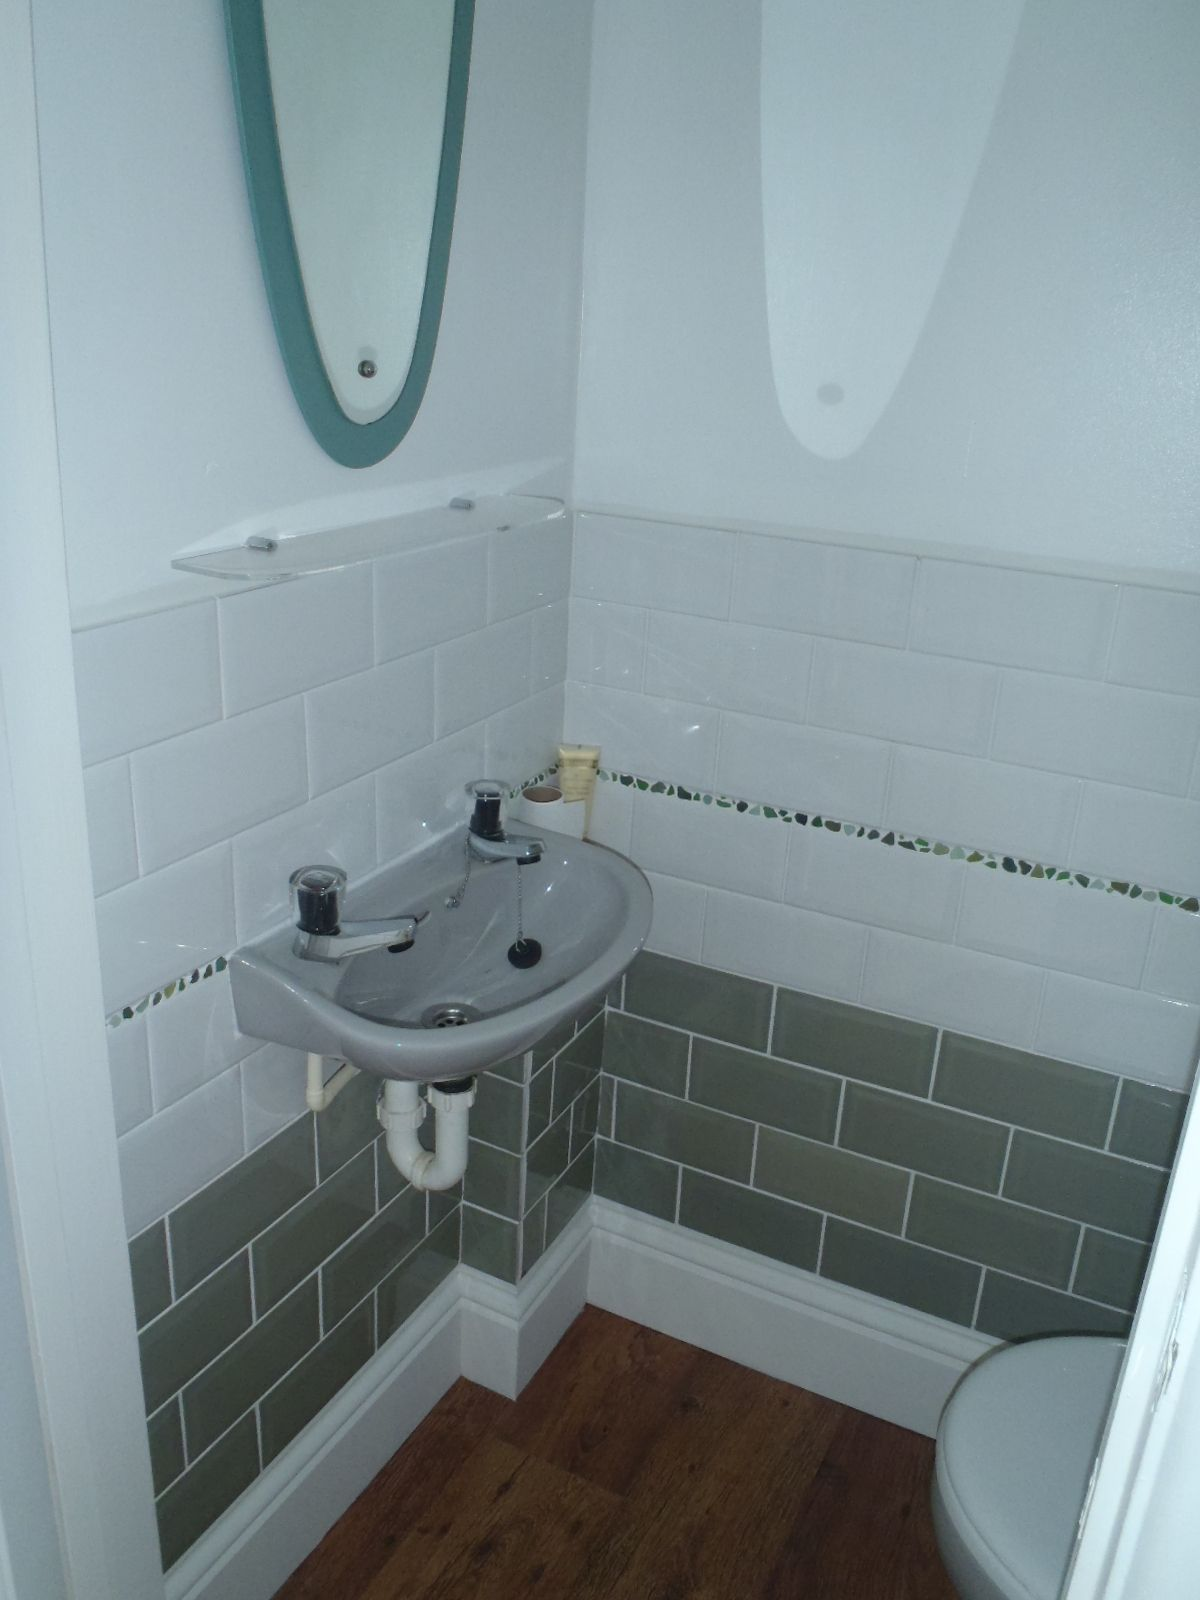 Use sea glass as mosaic tiles in a small toilet / cloakroom!